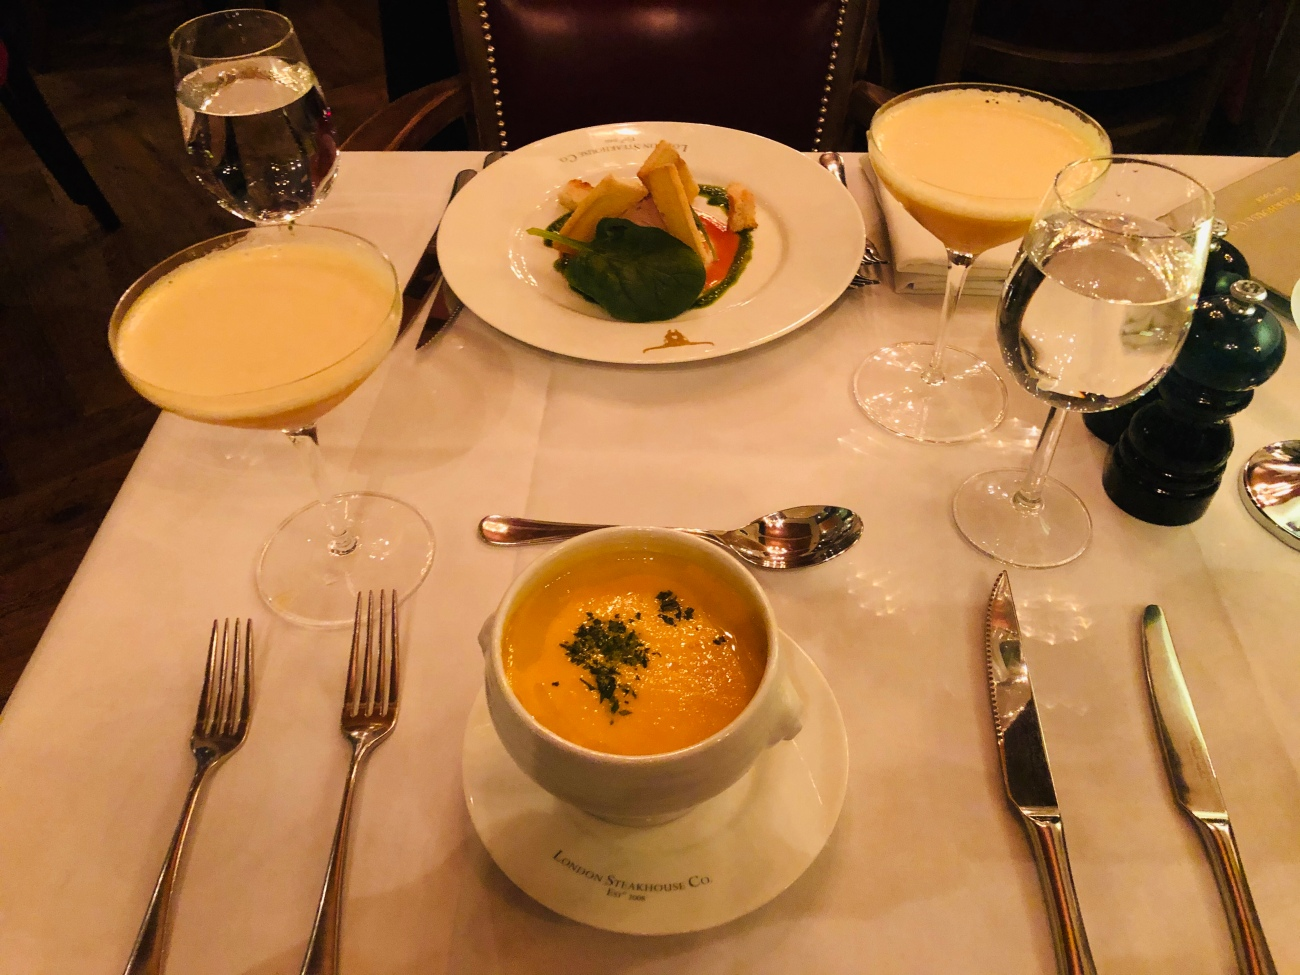 Carrot and Ginger Soup and Chicken Liver Parfait